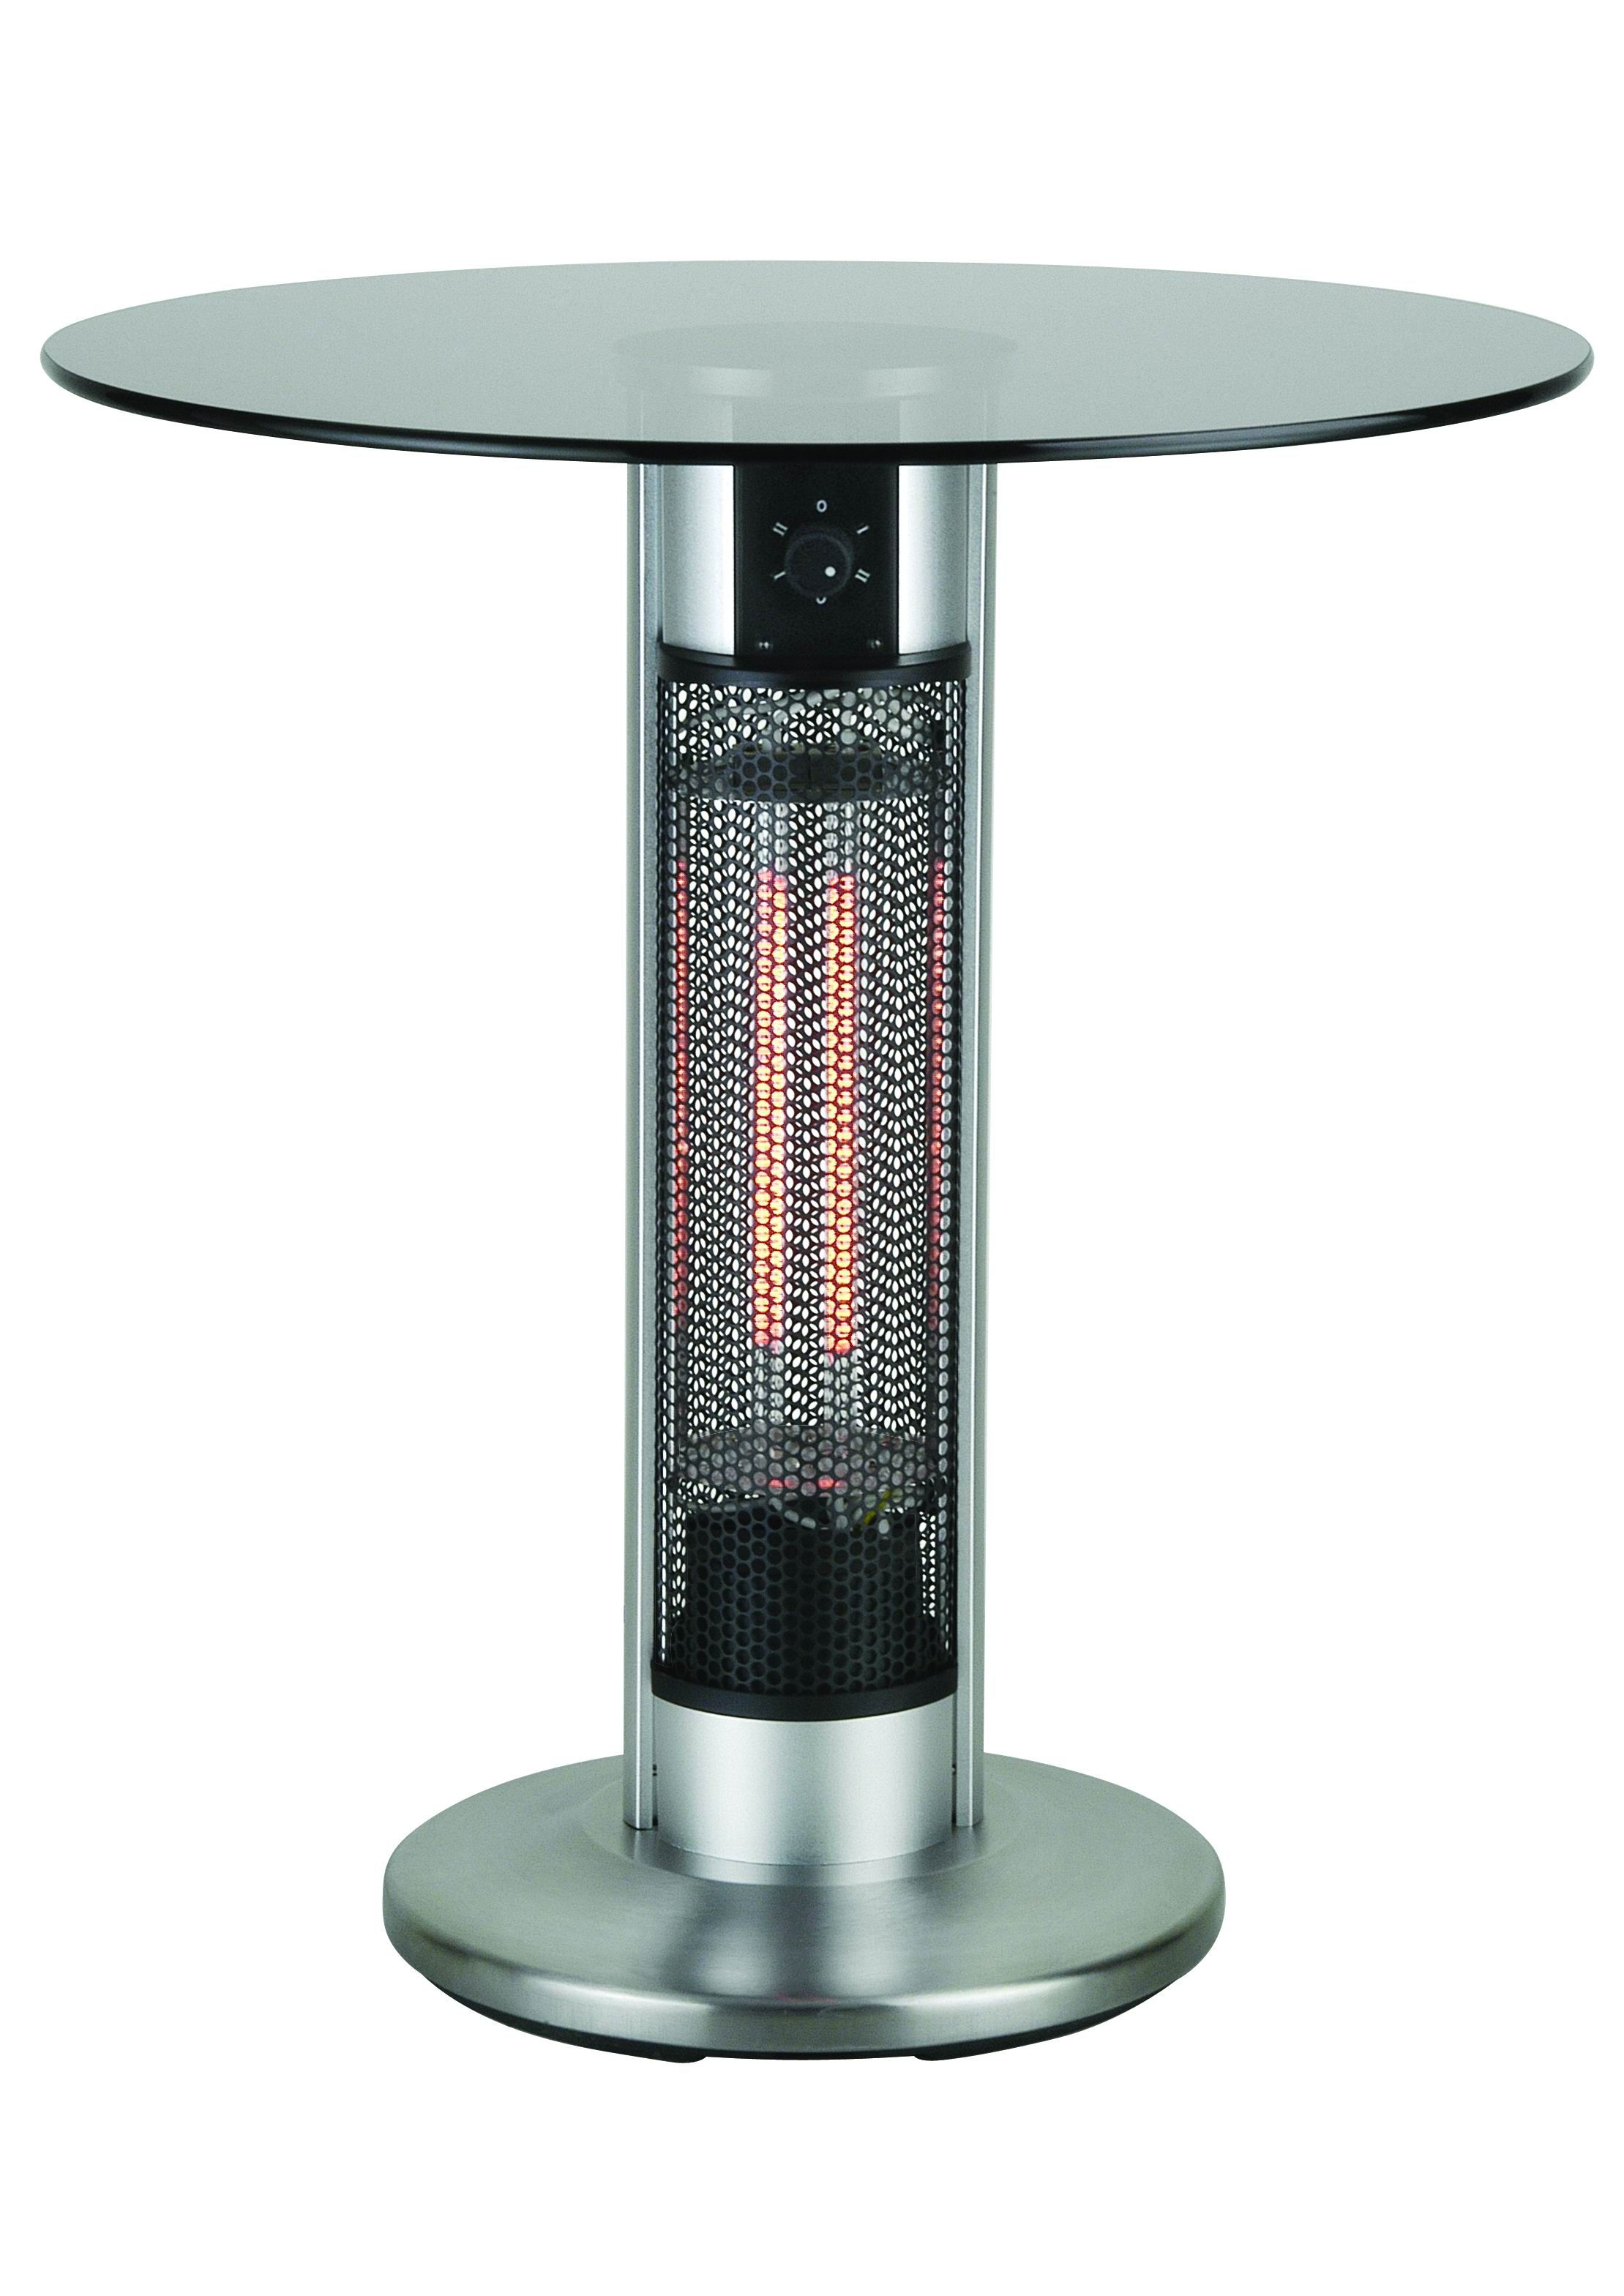 Electric E Heaters Table Heater Manufacturer From Zhongshan China